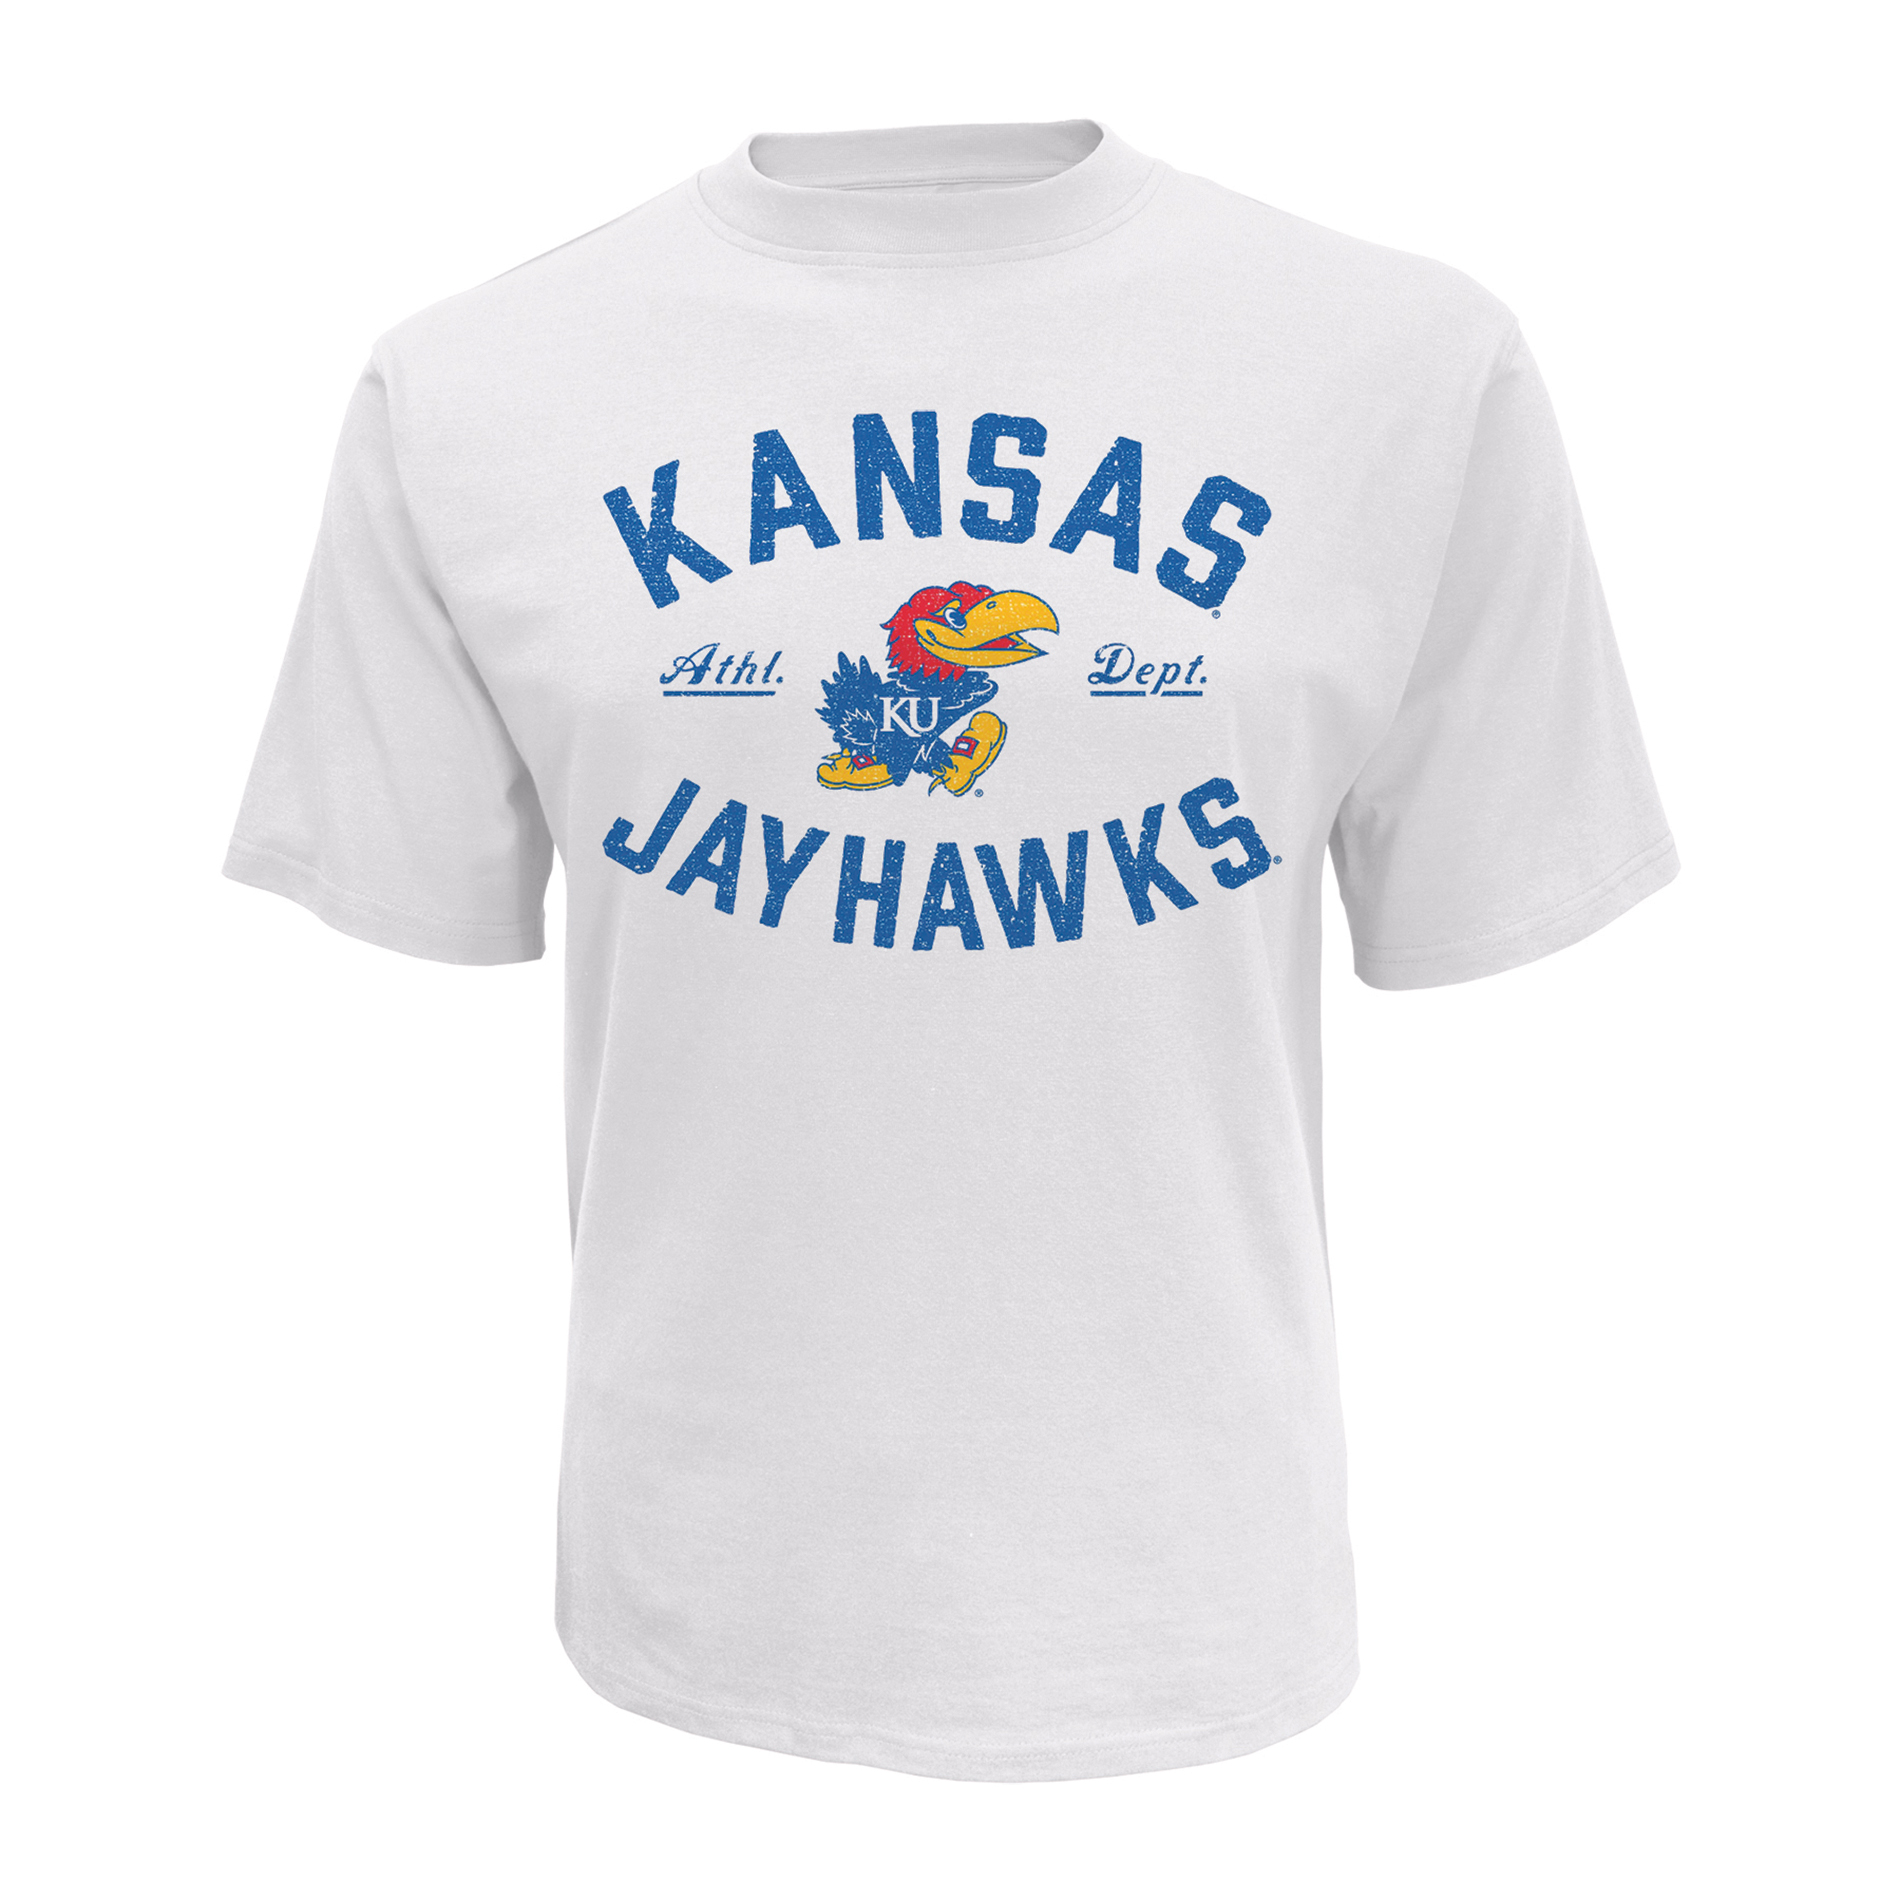 petite NCAA Men's Short-Sleeve T-Shirt - Kansas Jayhawks, Size: XL